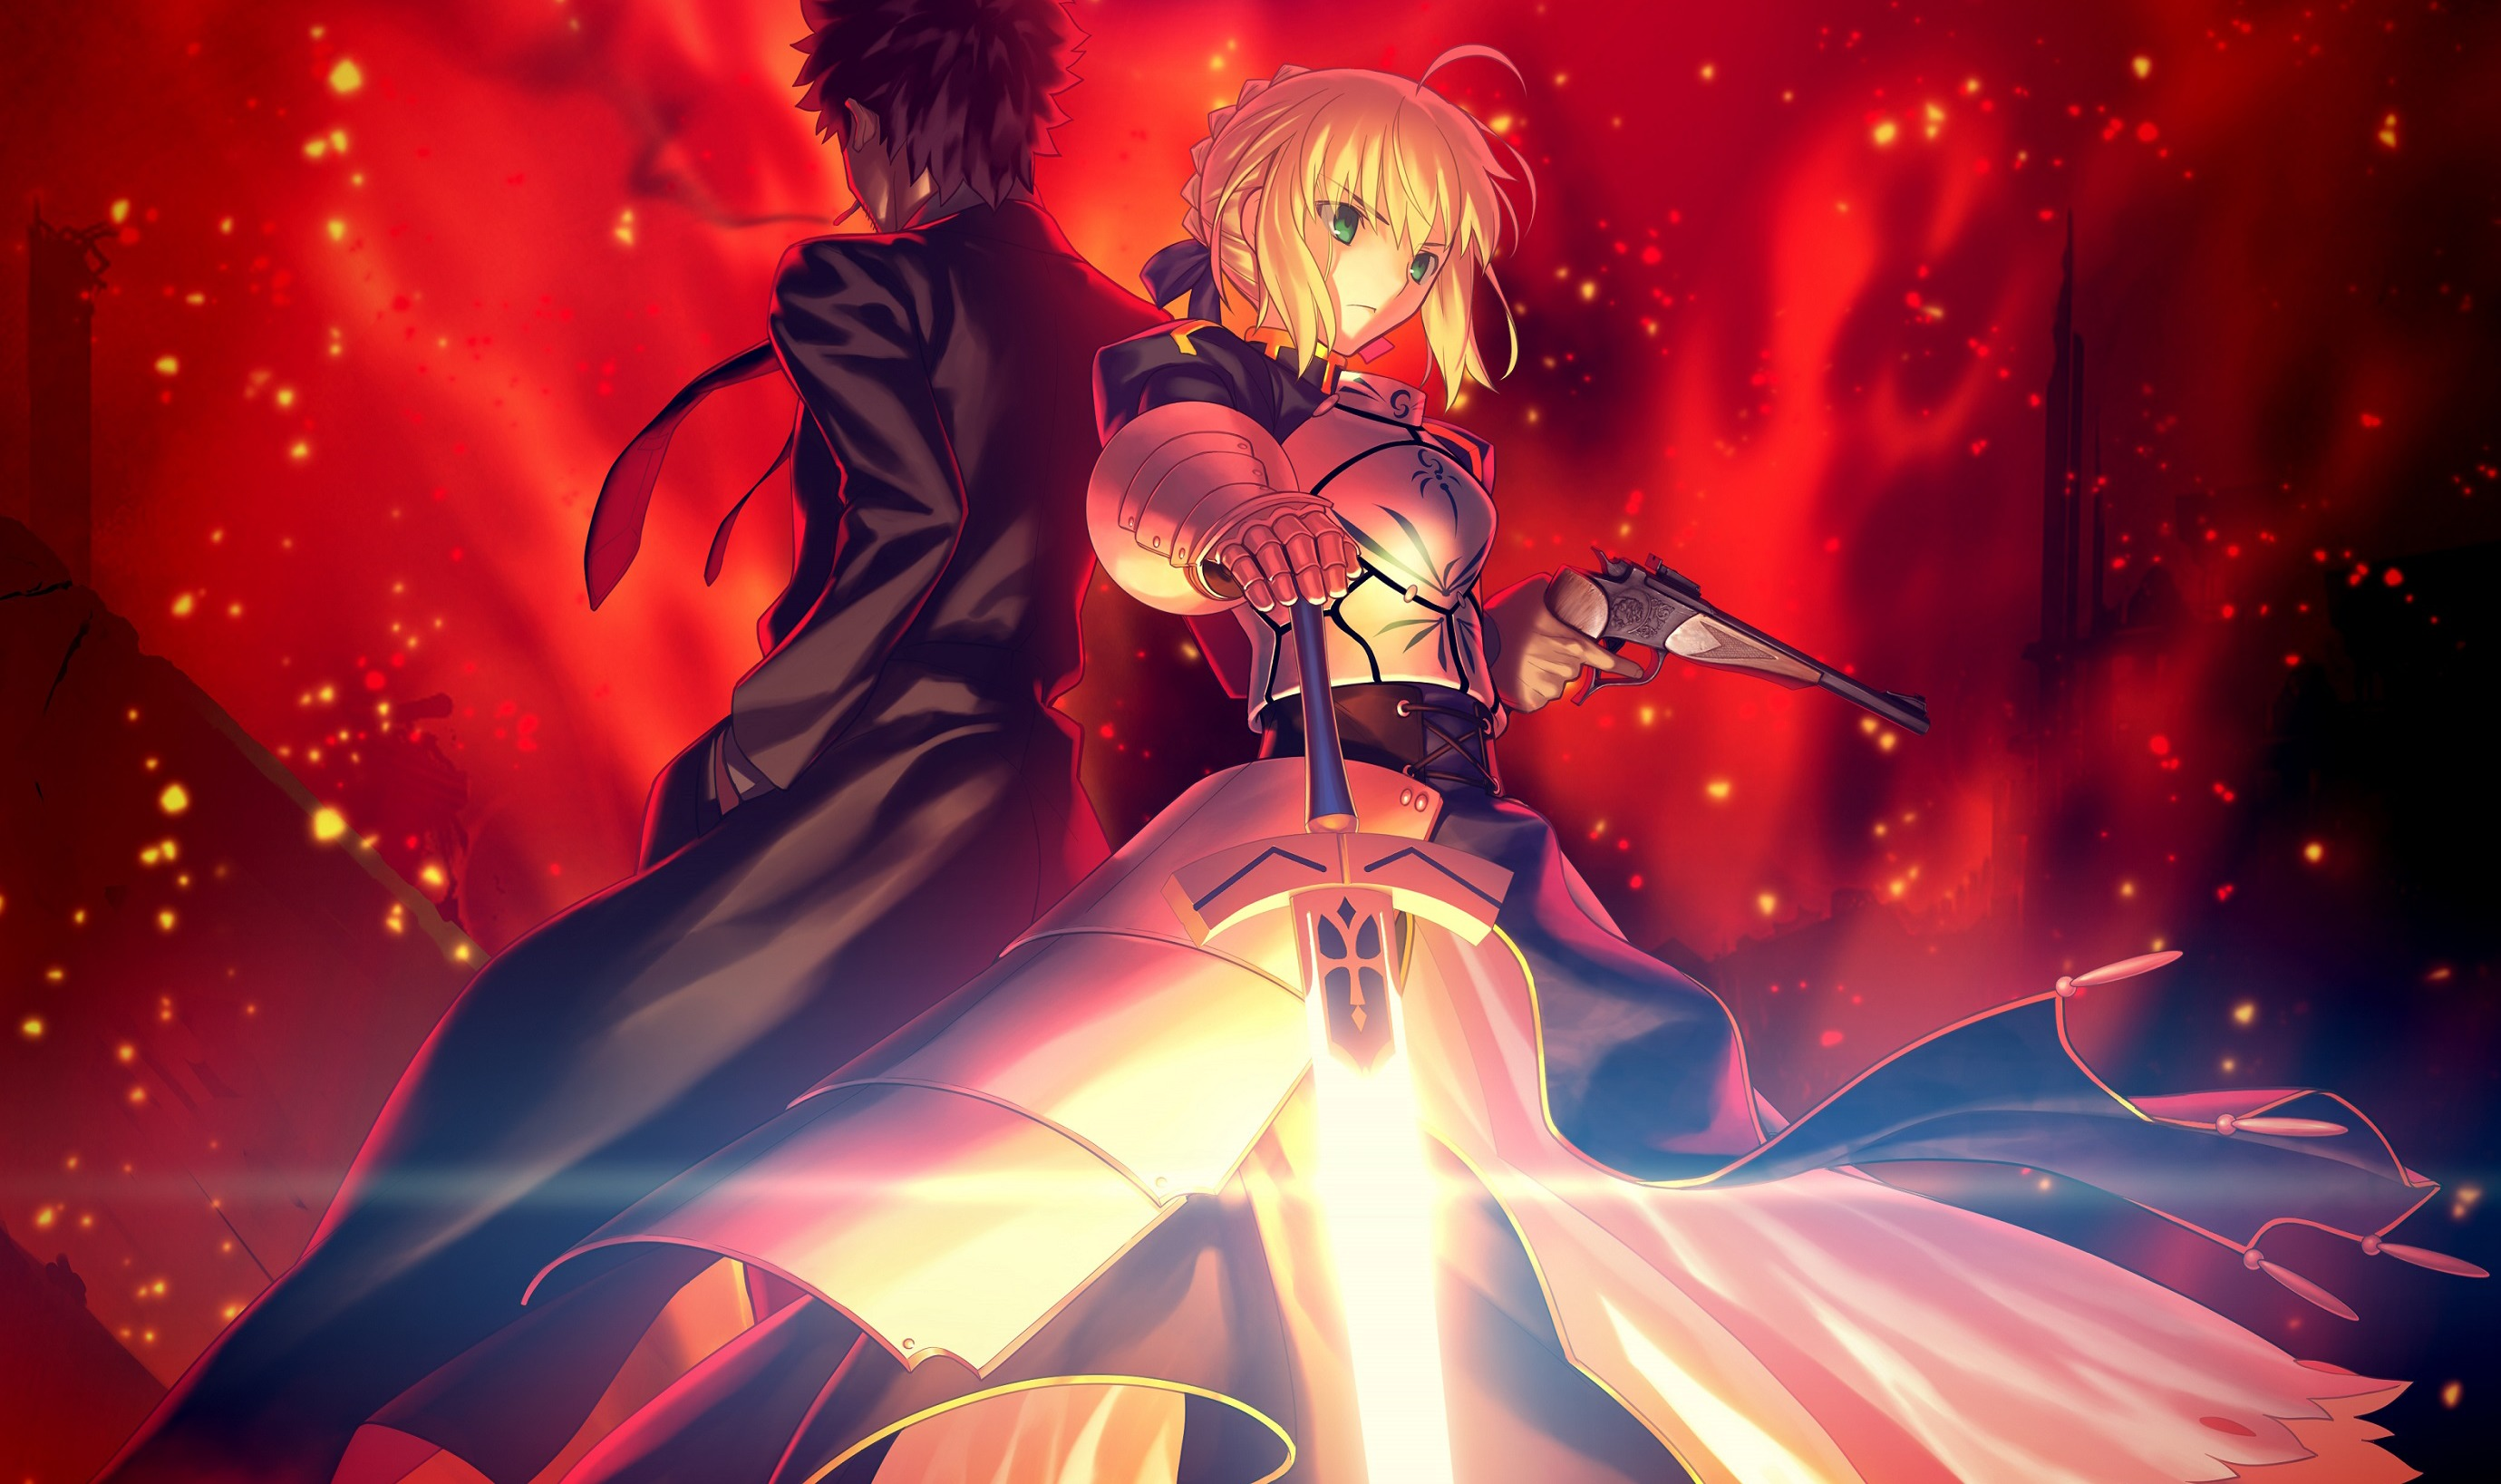 Saber Fate Grand Order Series Wallpaper Hd Anime 4k Wallpapers Images Photos And Background